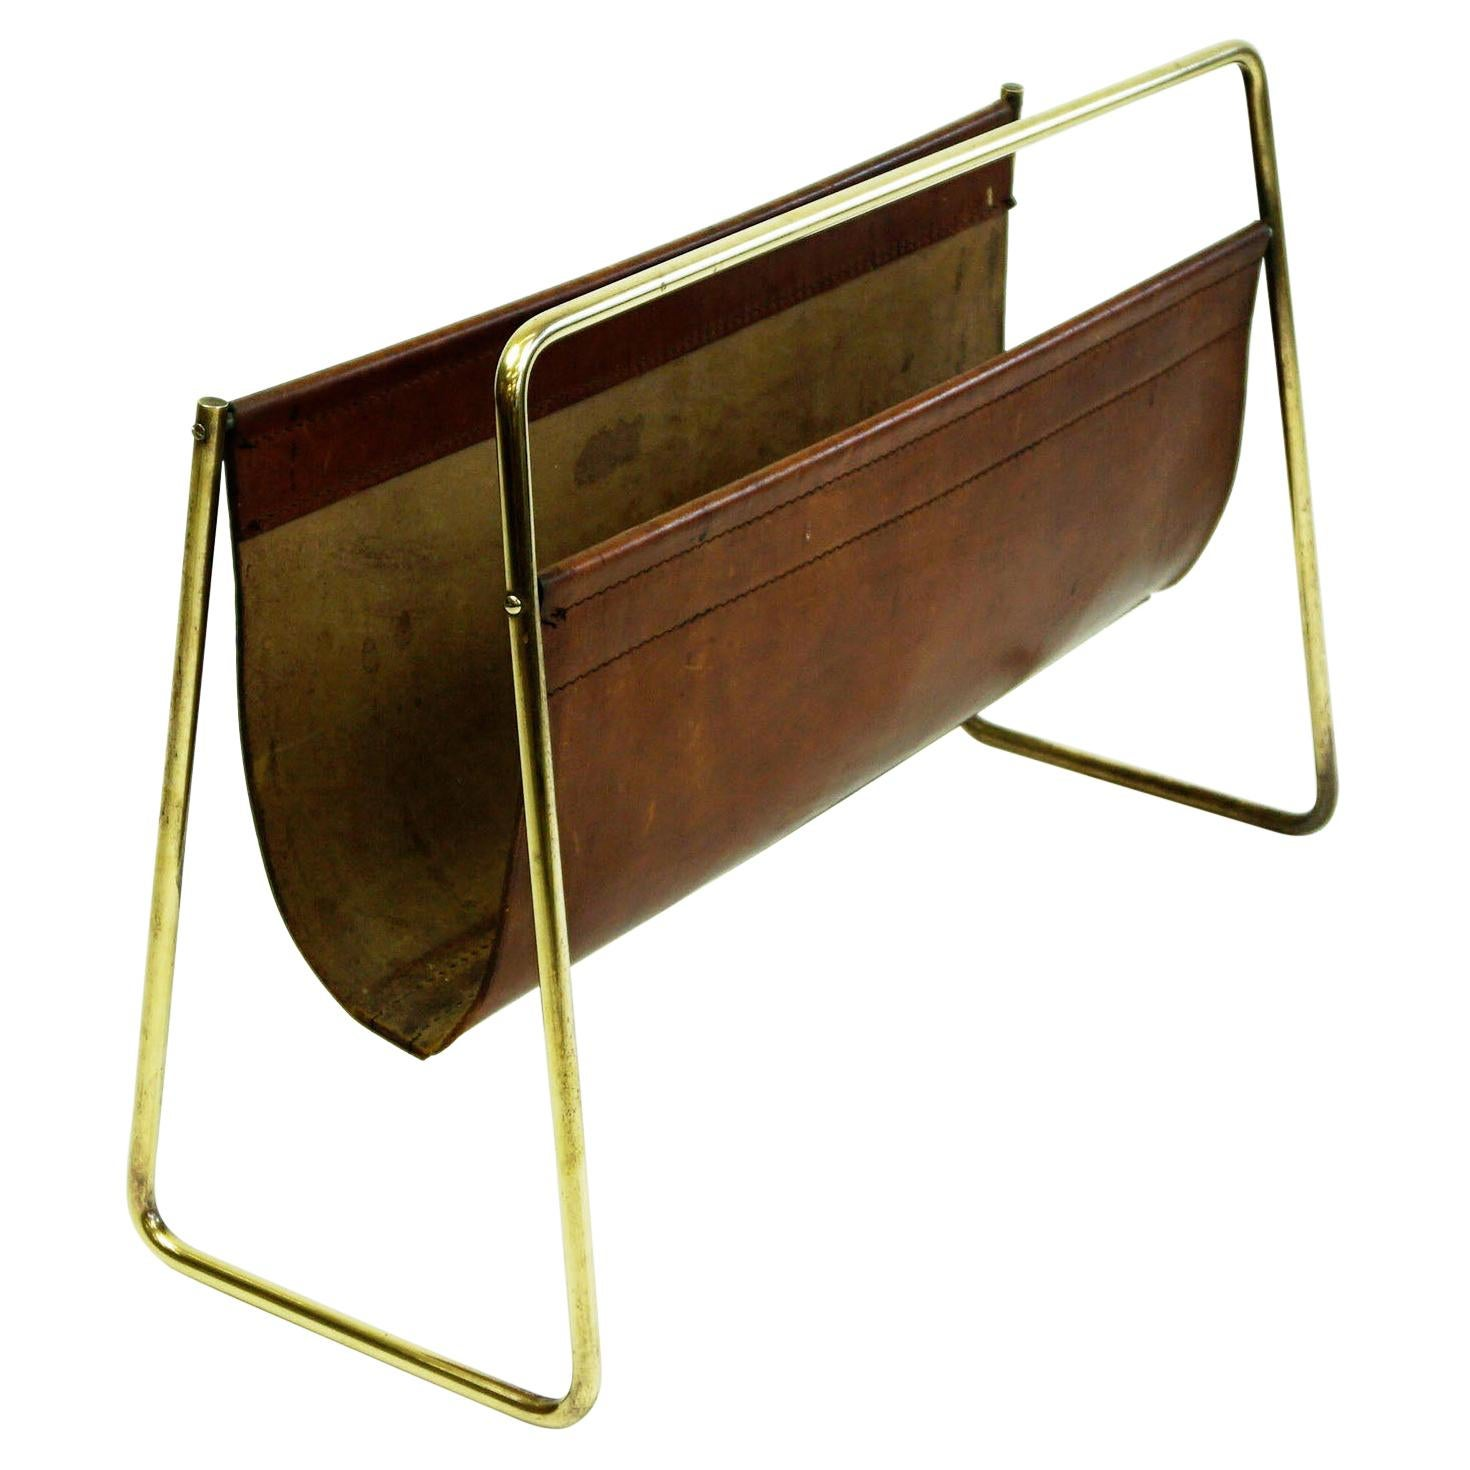 Large Austrian Midcentury Leather and Brass Magazine Rack by Carl Auböck